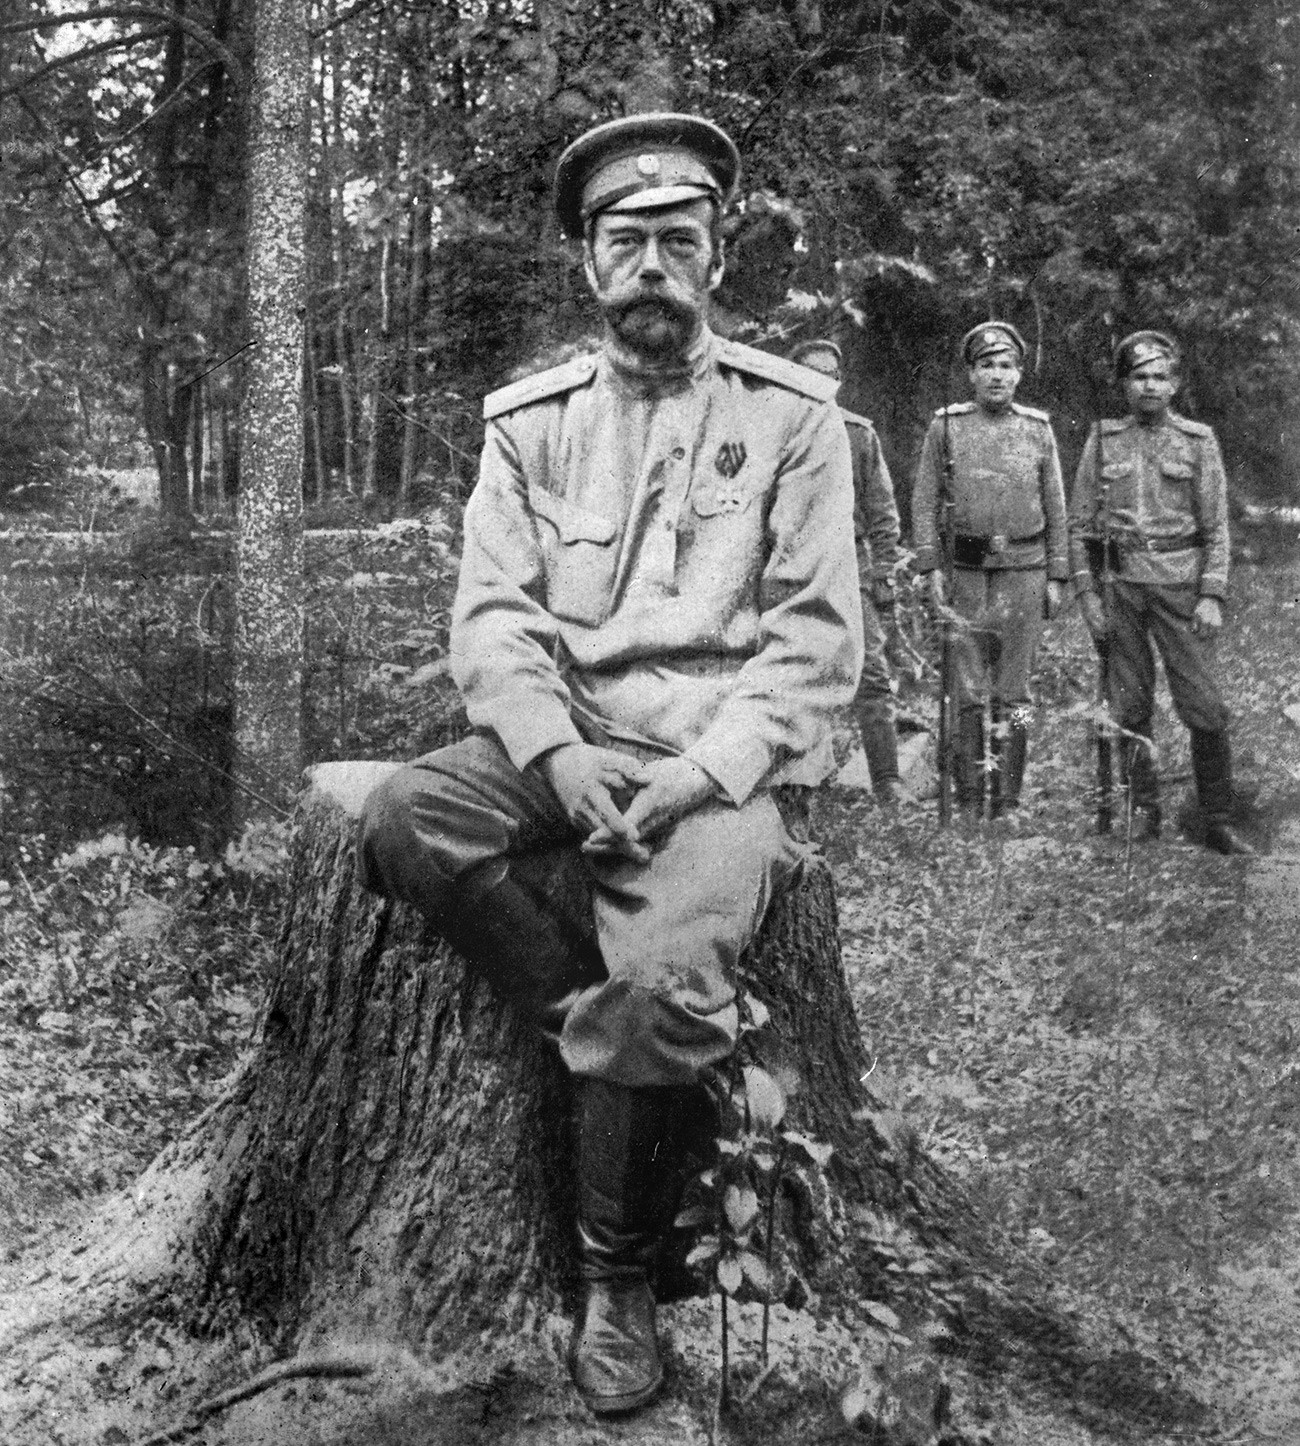 Nicholas Romanov, no longer a tsar, in Tsarskoye Selo in 1917.